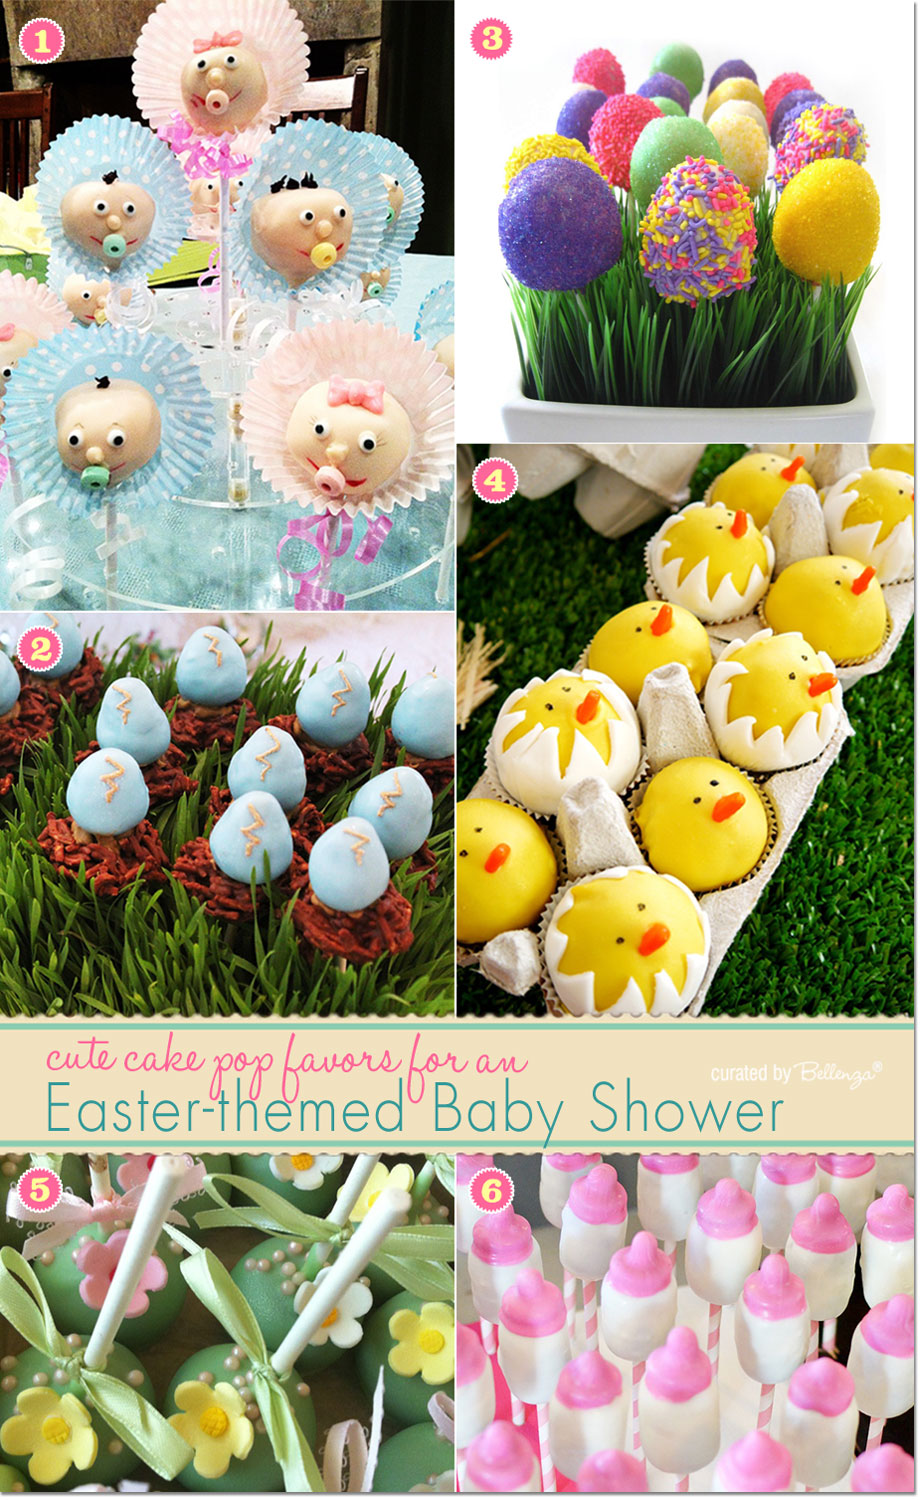 Easter cake pops for baby shower from fun chicks to colorful egg shaped cake pops